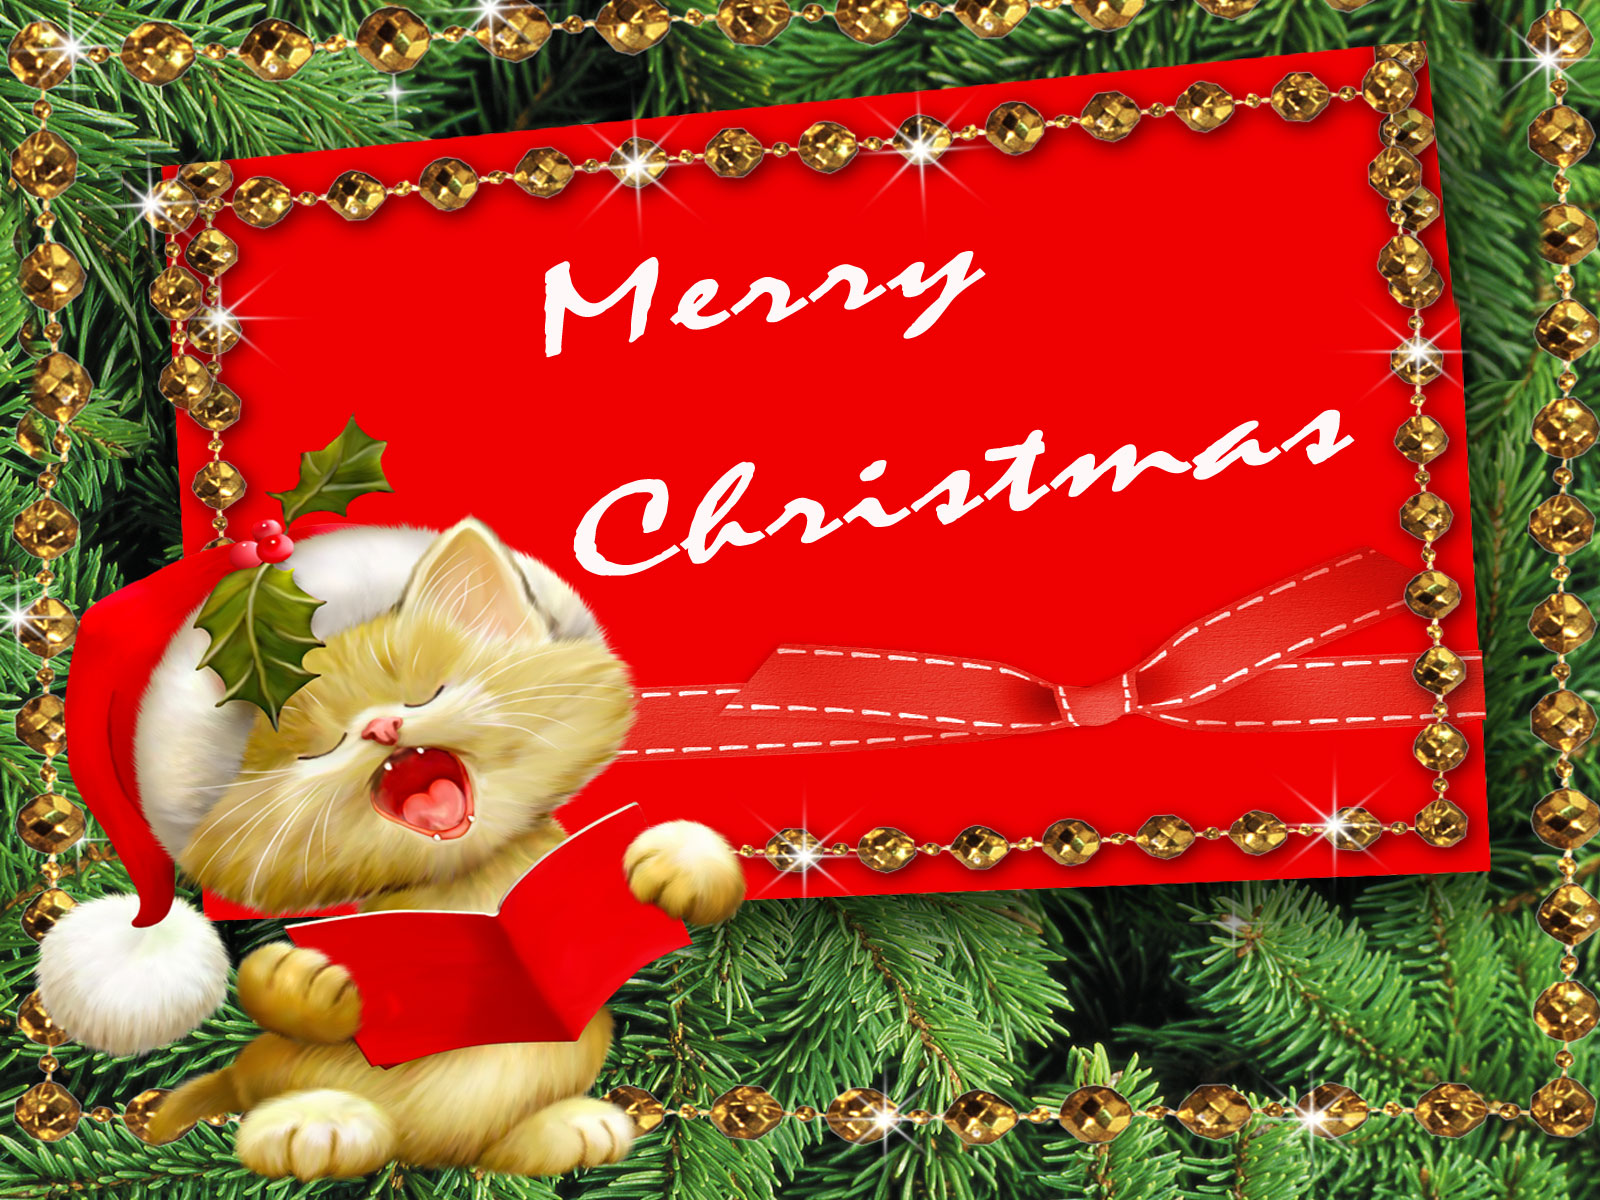 Merry christmas images free christmas wallpaper